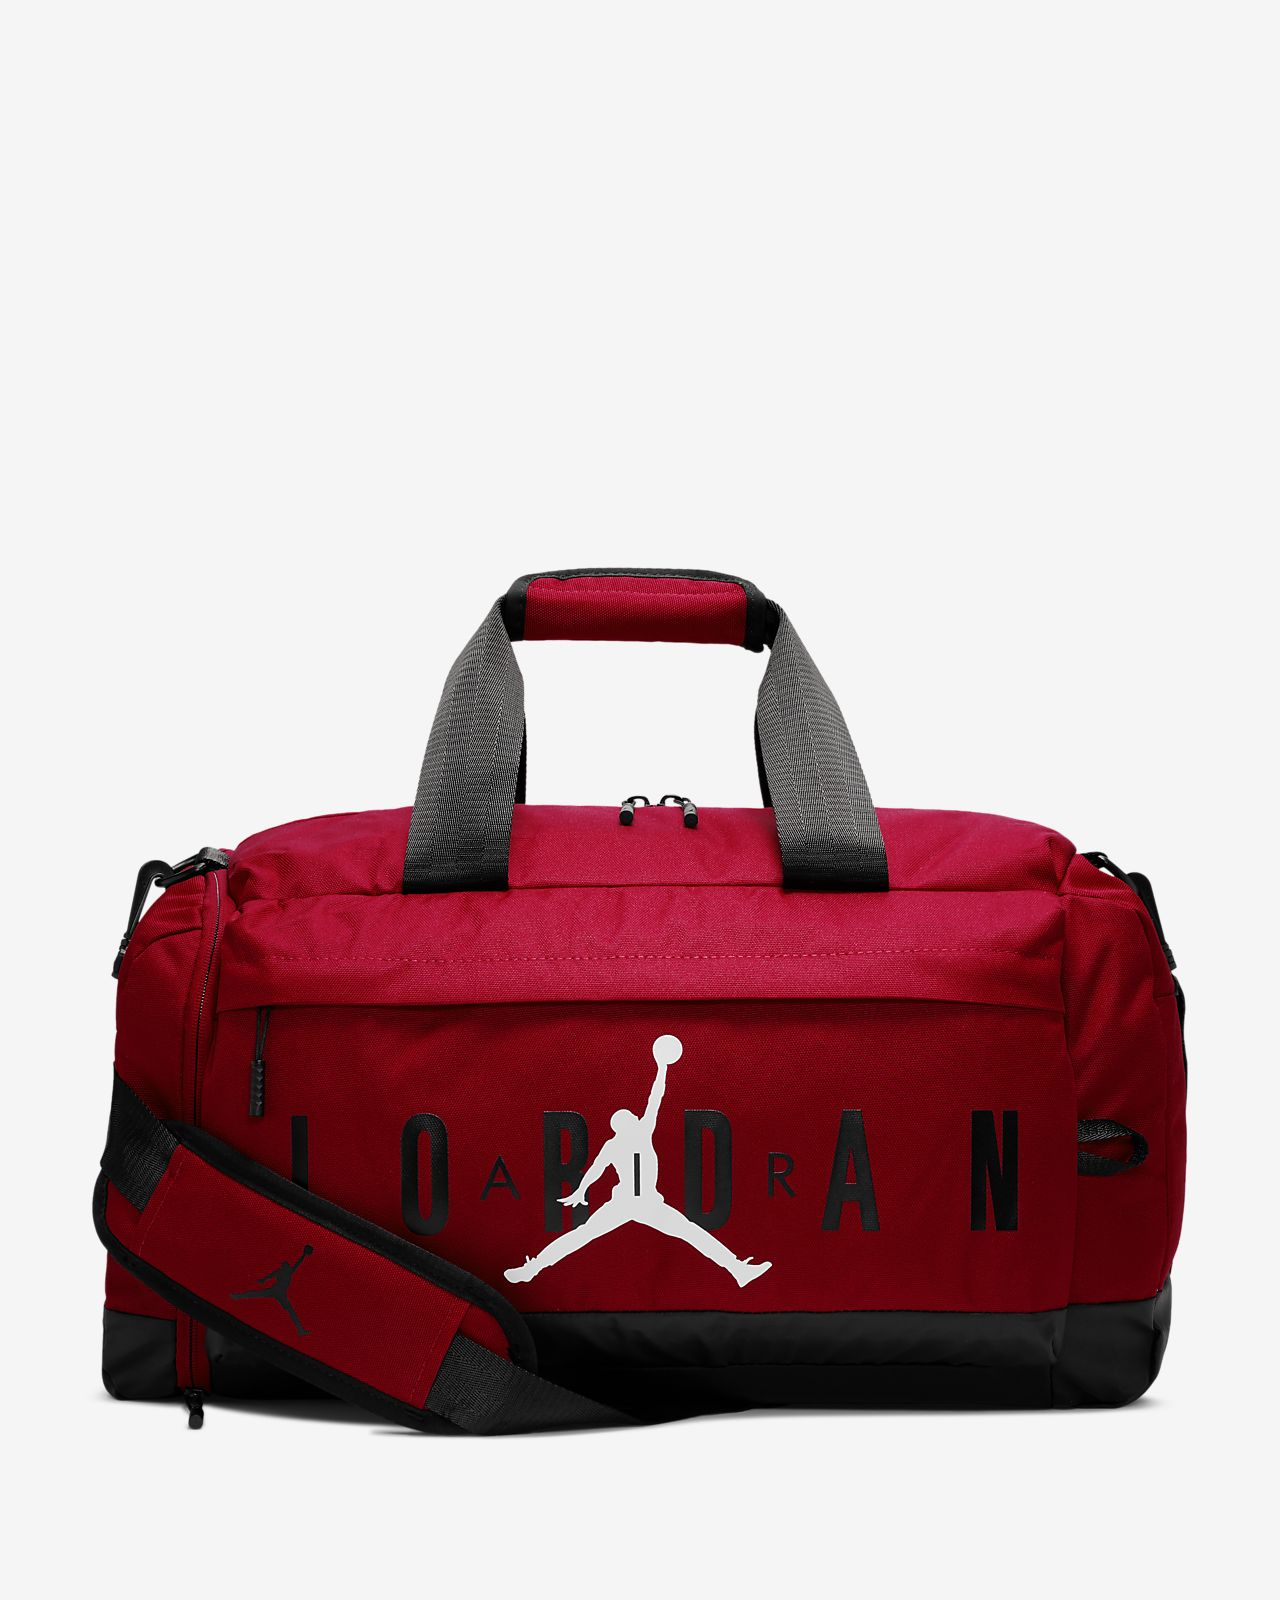 Sportbag Jordan Jumpman Air